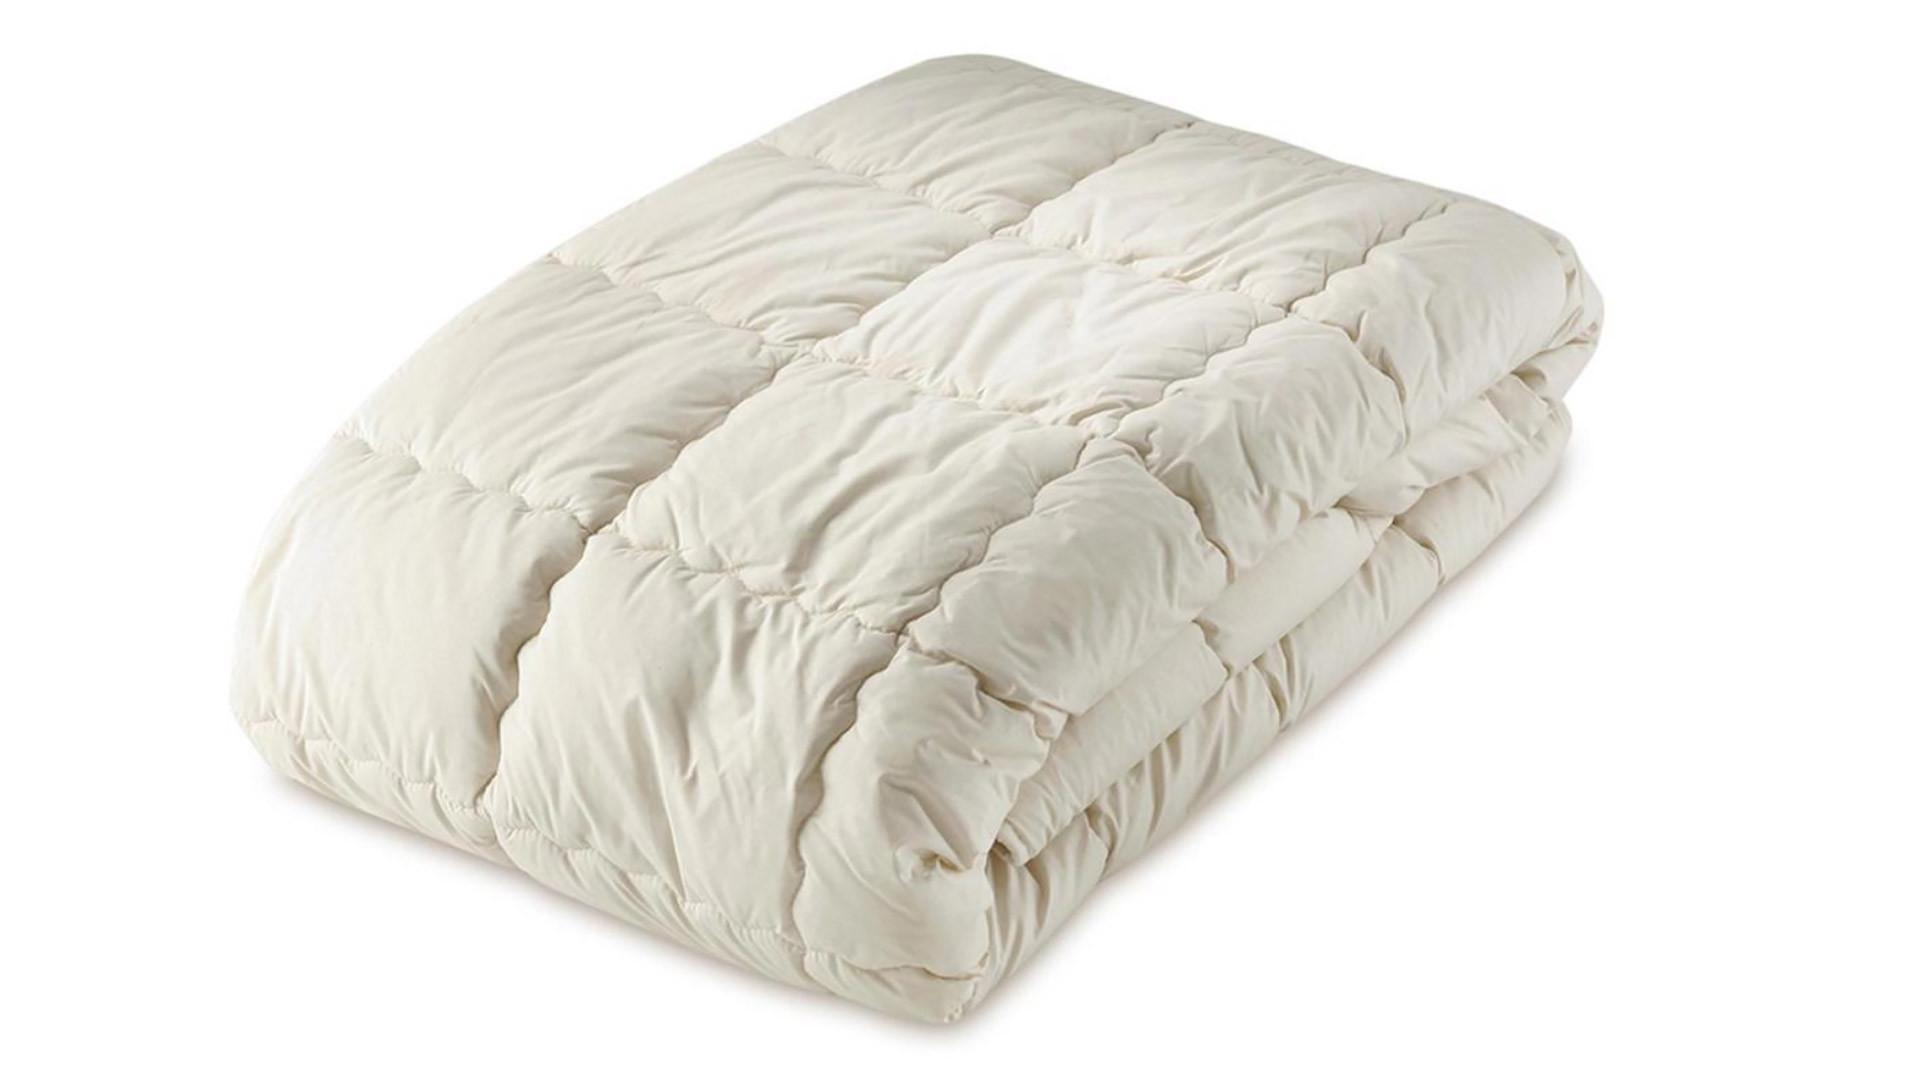 Organic Cotton Filled Mattress Covers Toppers Natural